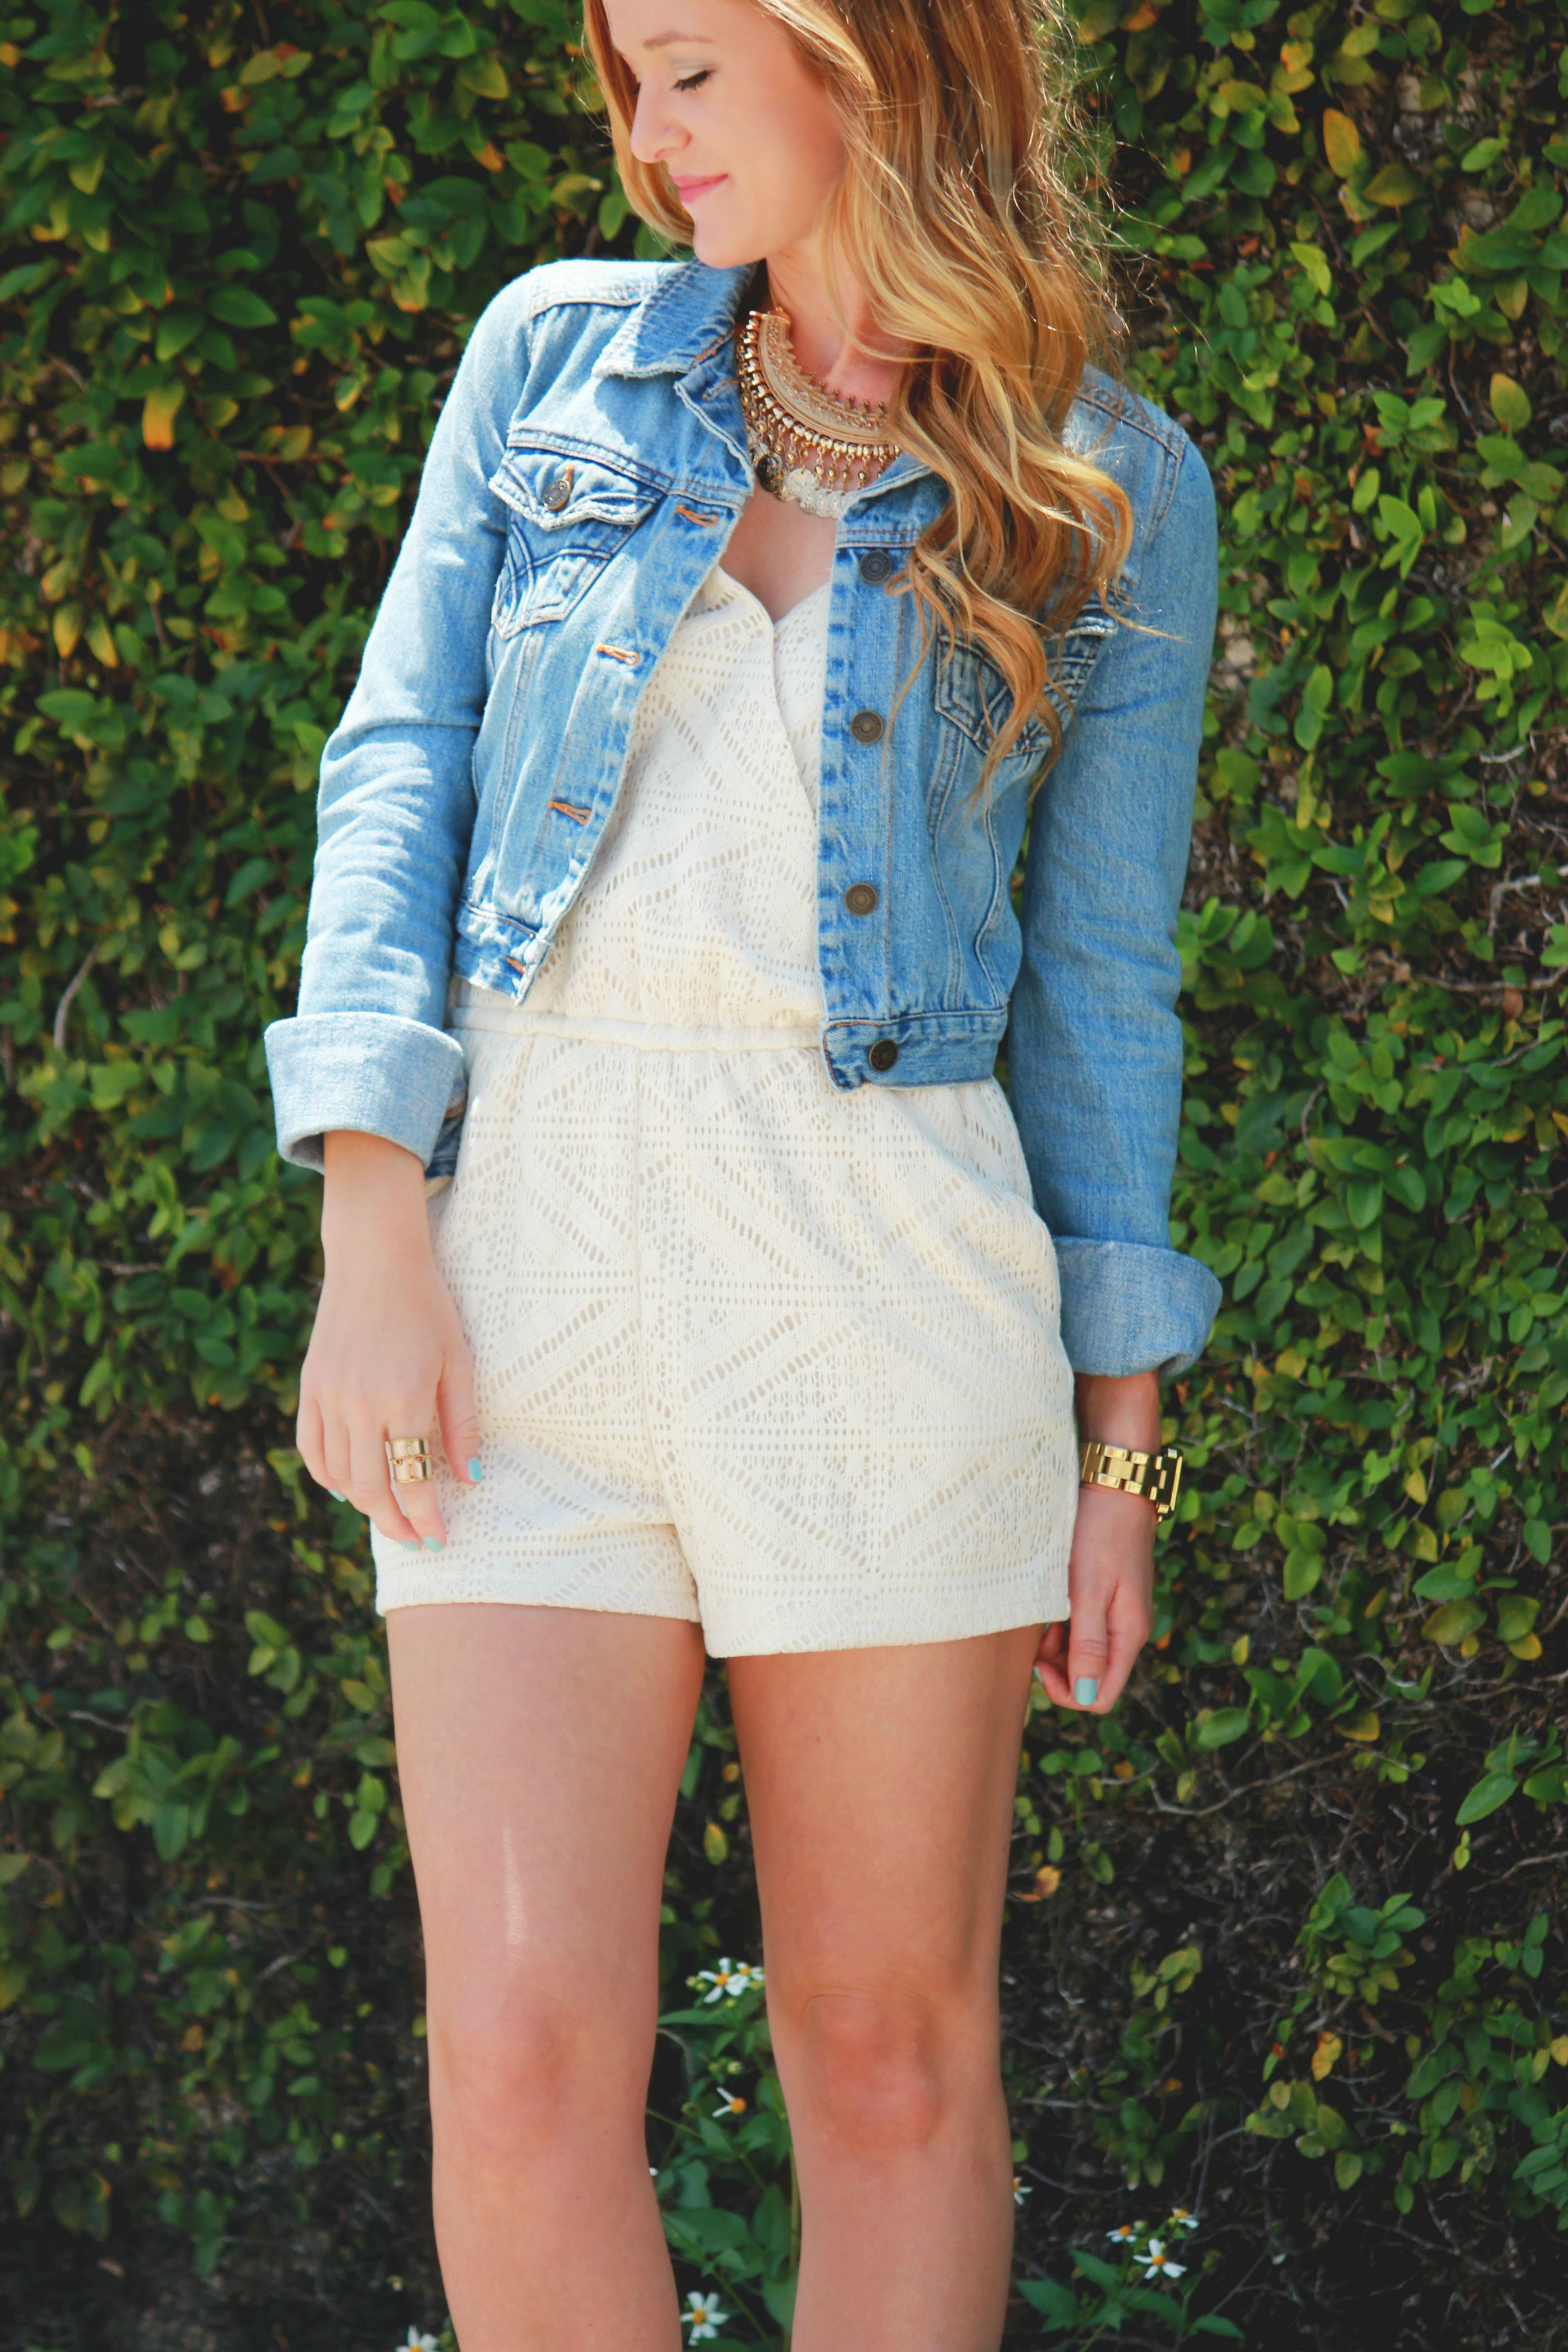 forever 21 romper, jean jacket, dsw boots, coin necklace, Michael Kors watch, casual spring outfit, spring fashion